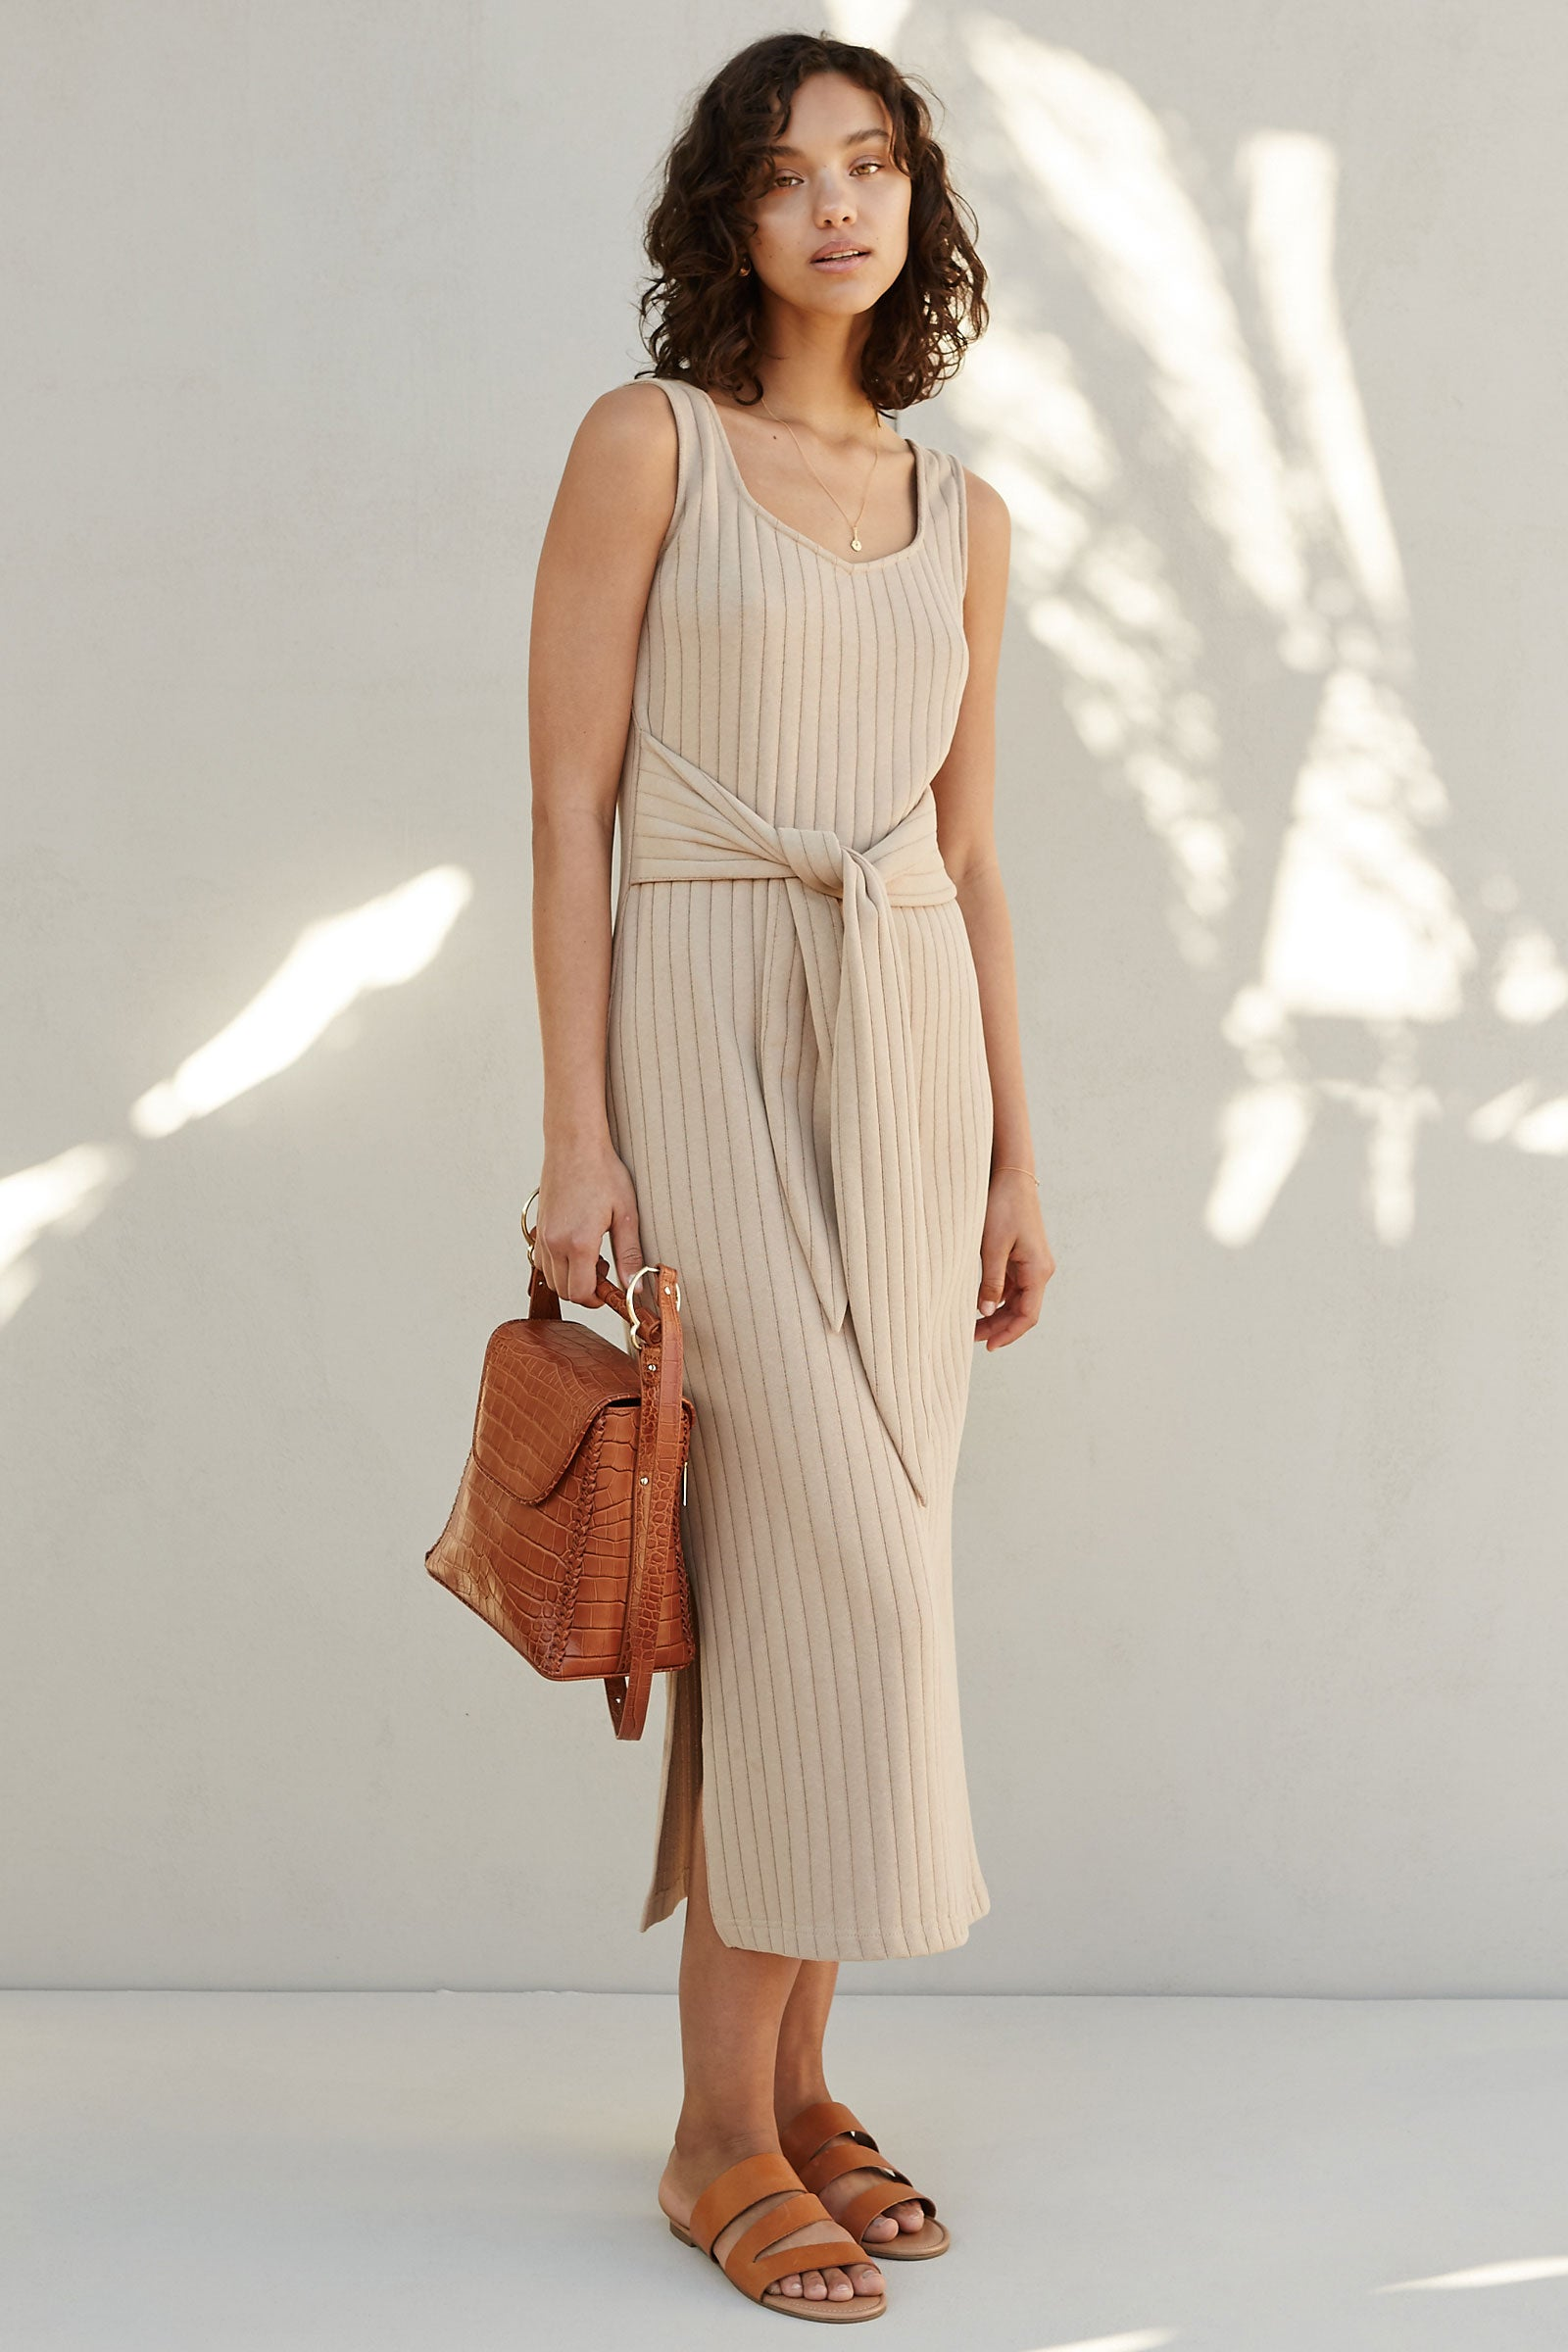 THE MARA TIE DRESS